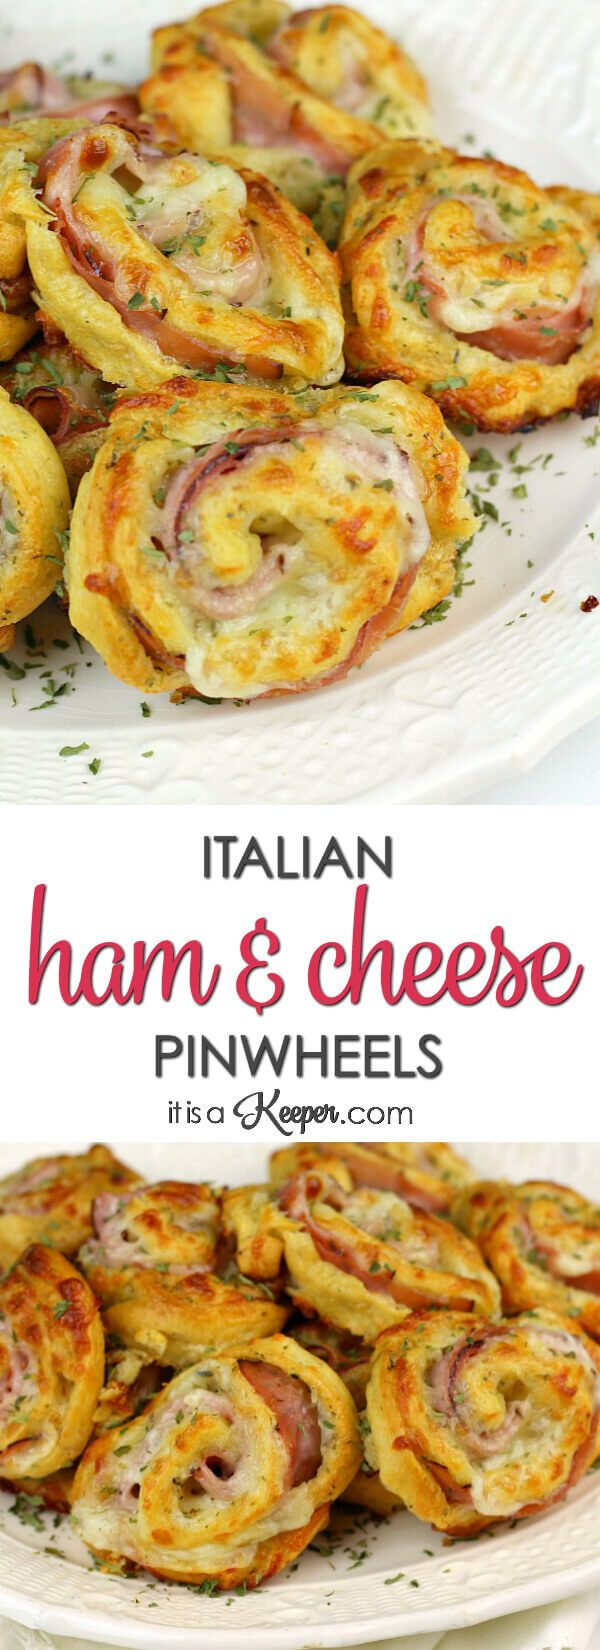 Italian Ham and Cheese Pinwheels - this easy recipe is perfect for a party or an easy meal